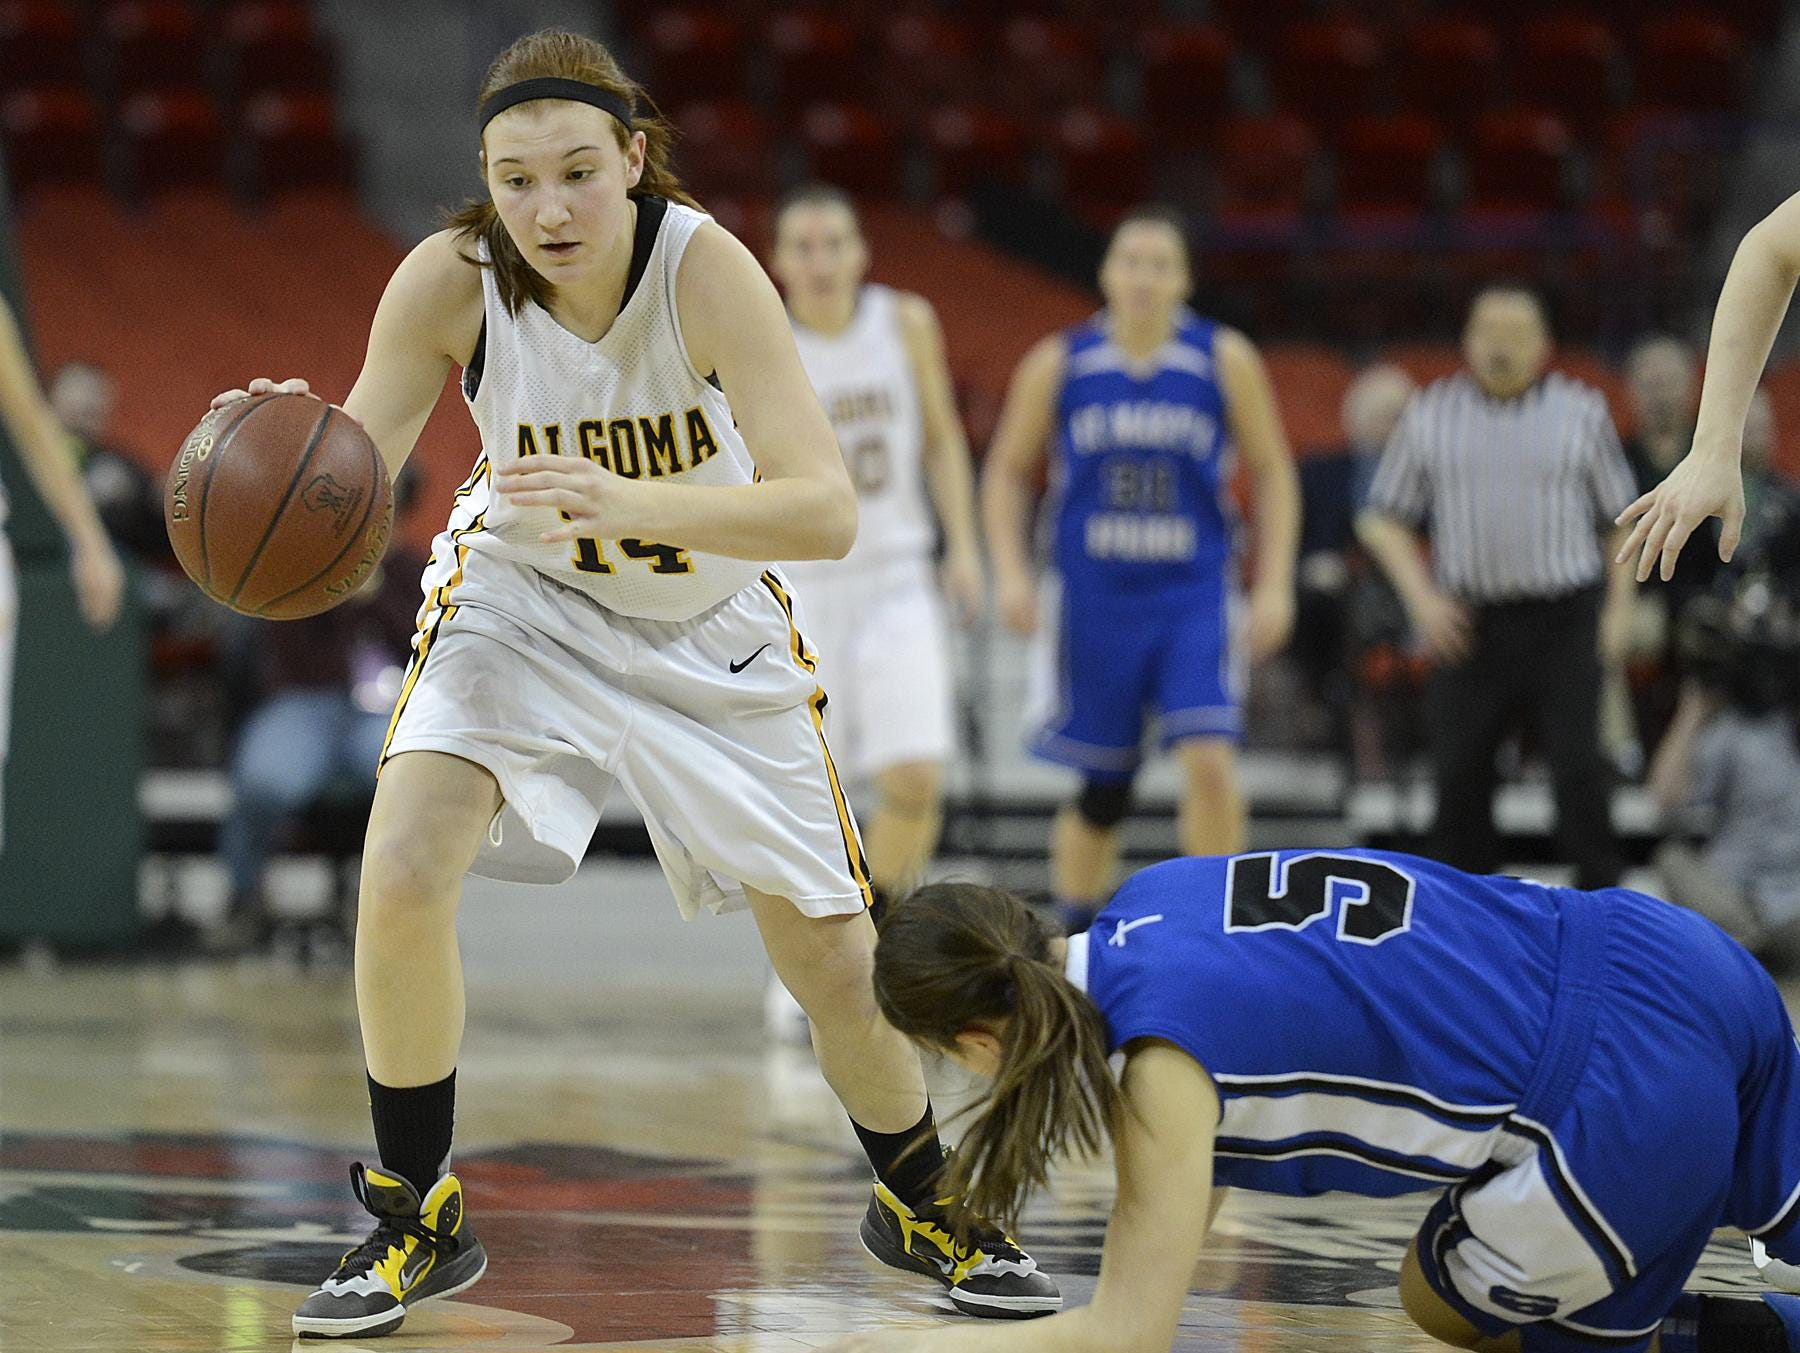 Algoma's Baleigh Delorit has made a verbal commitment to play basketball at Northern Michigan University.